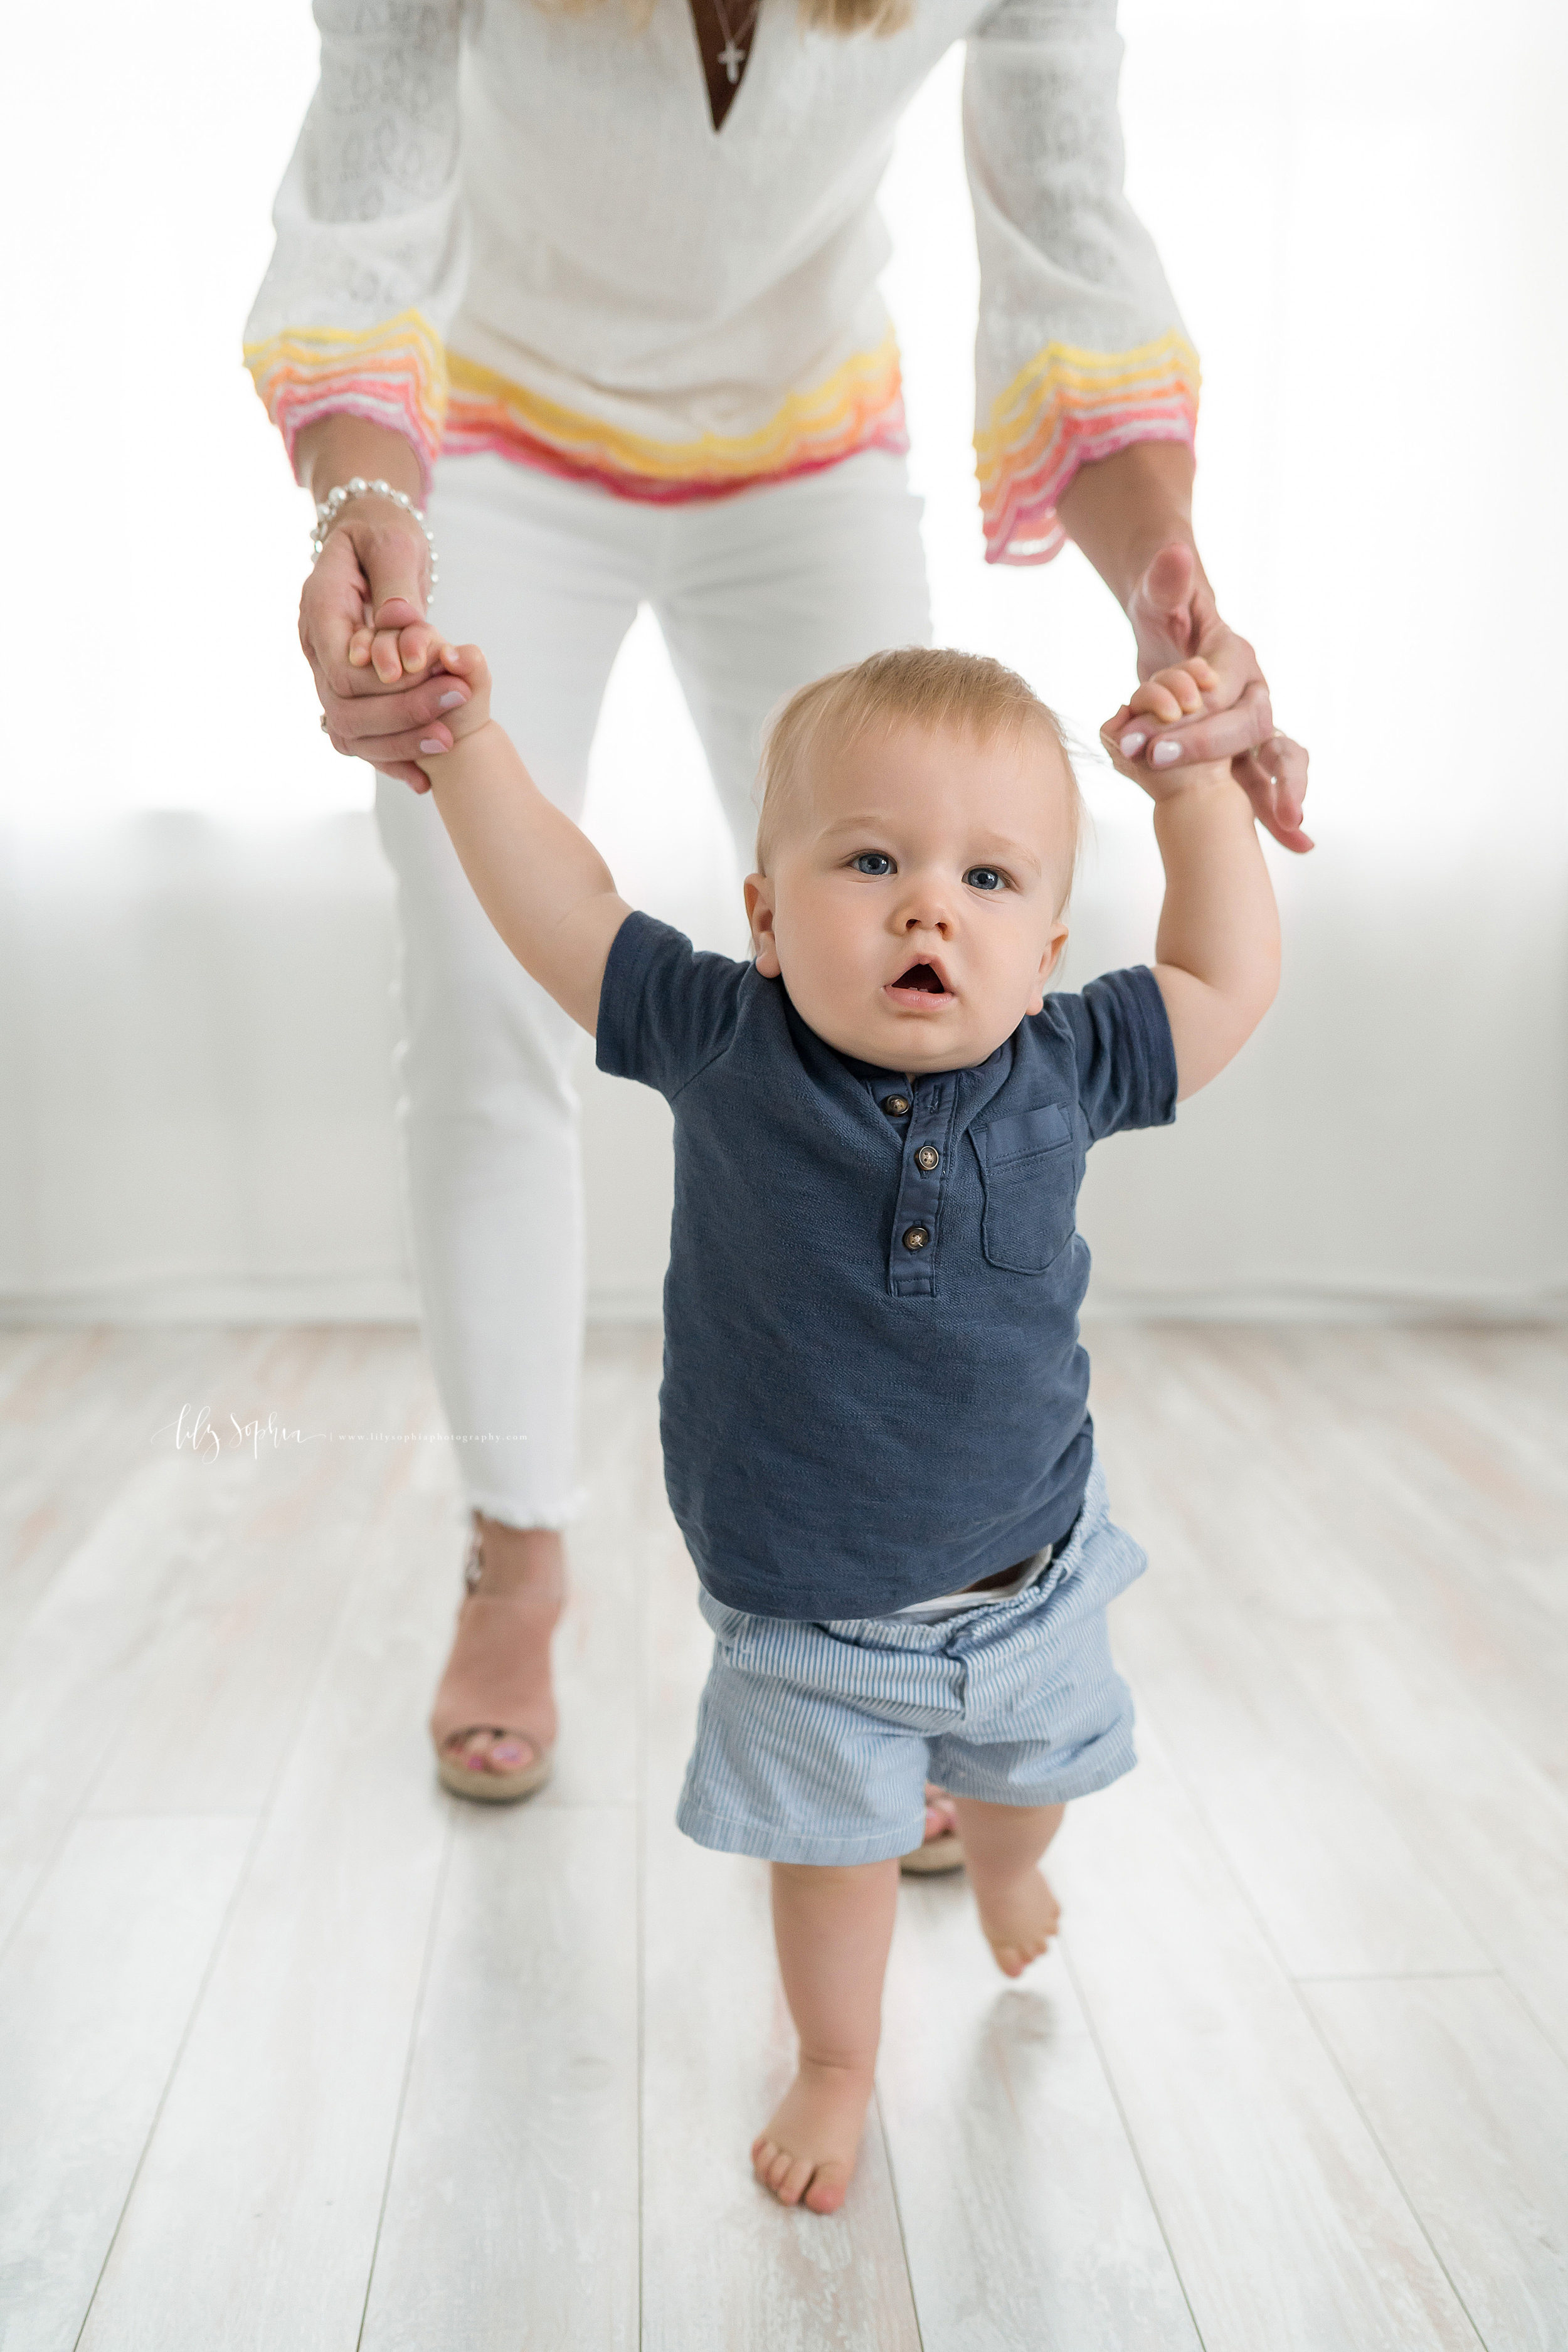 Milestone photo of an eager one year old taking steps while holding his grandmother's hands in a studio in Atlanta in natural light.